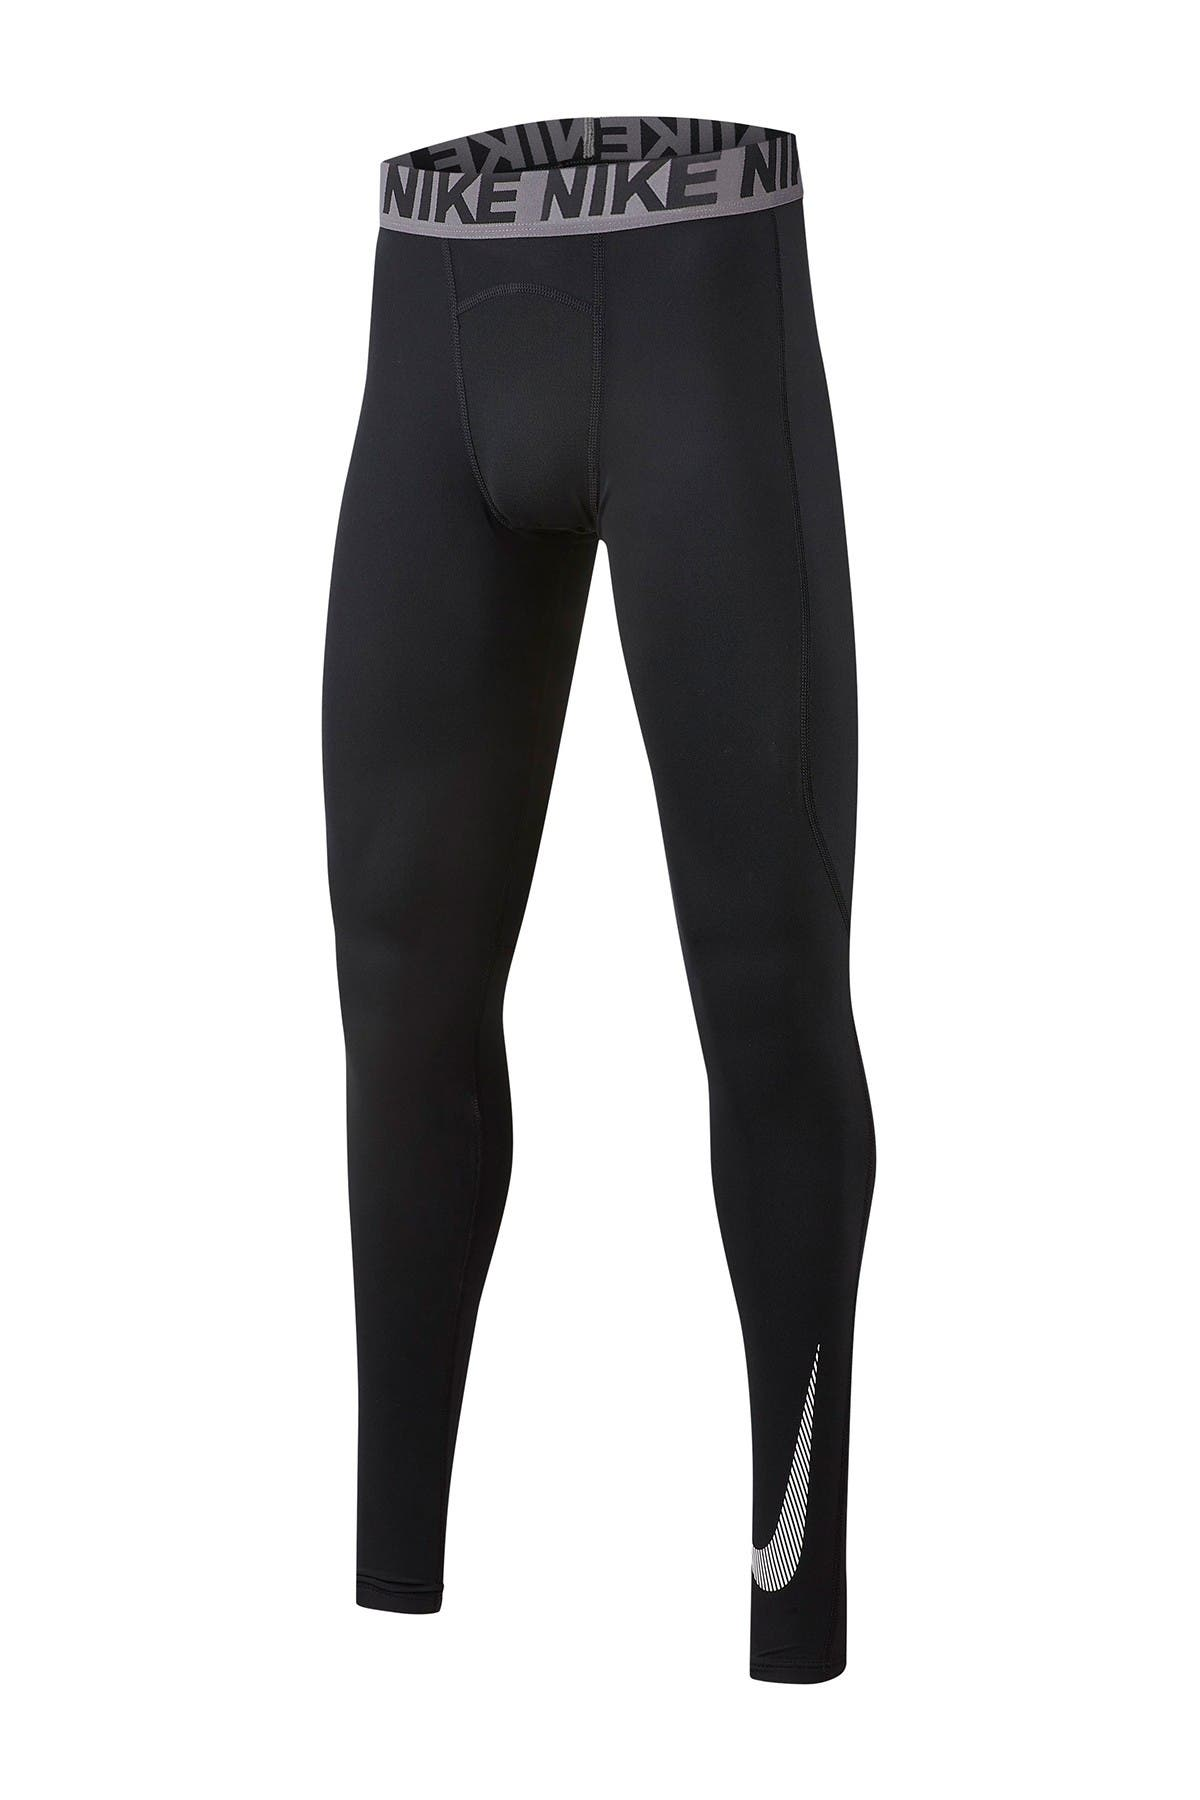 Image of Nike Dri-FIT Graphic Training Tights